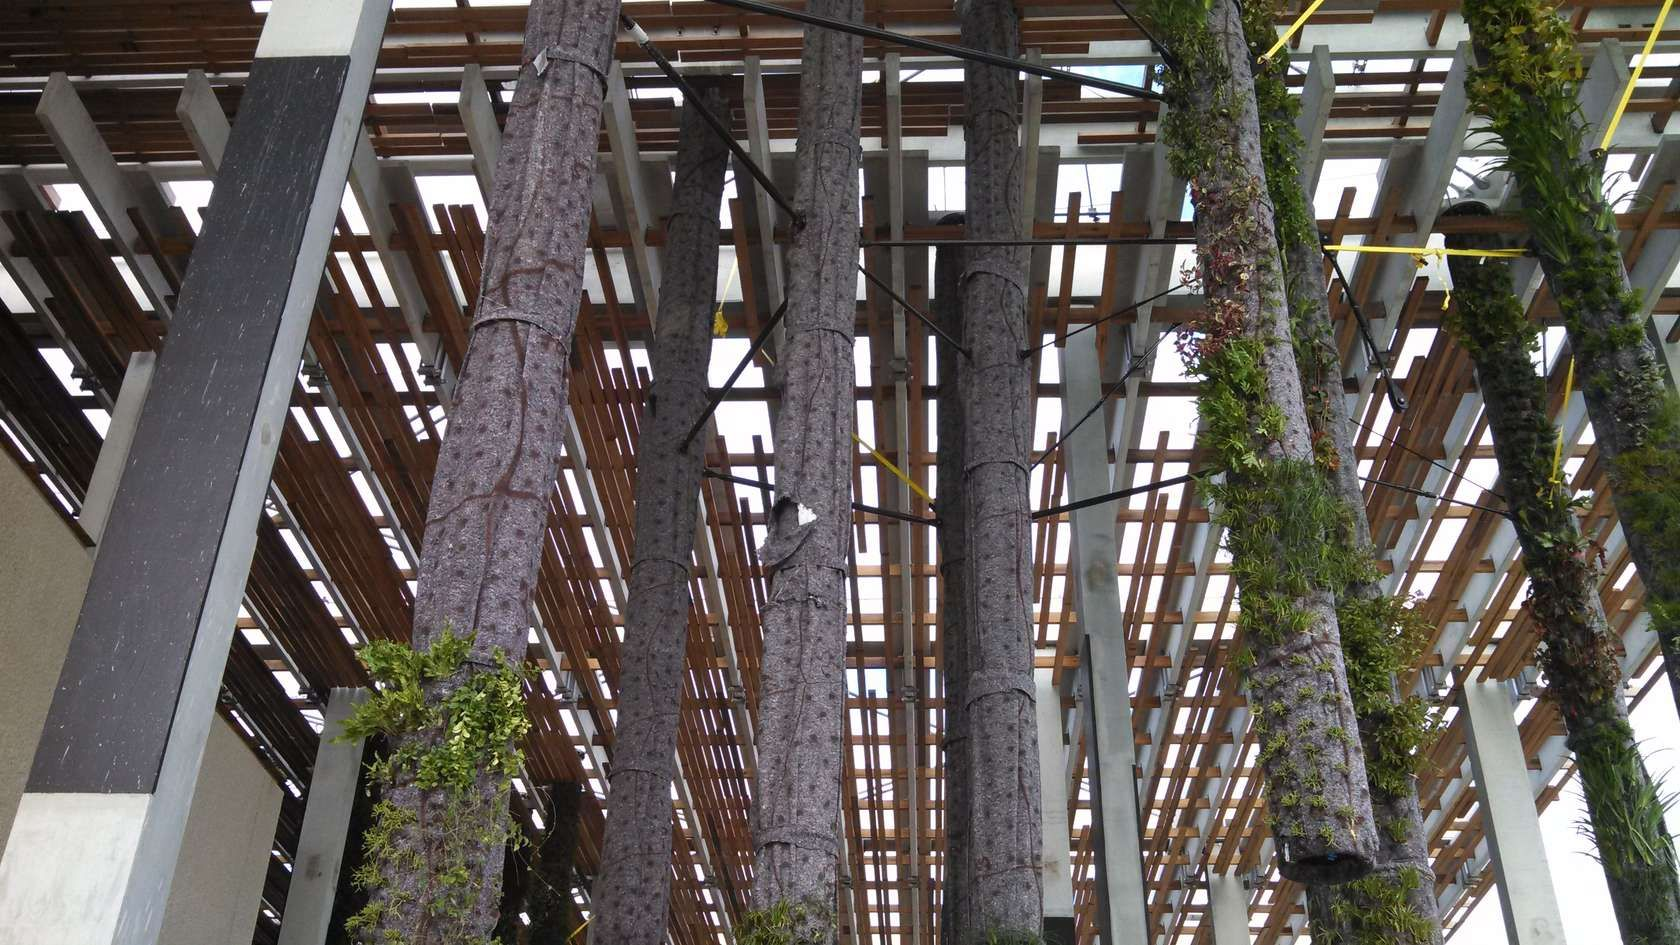 JTI designed and fabricated a complete superstructure for the Pérez Art Museum Miami Hanging Gardens. The tubes are custom 18in diameter fiberglass tubes.